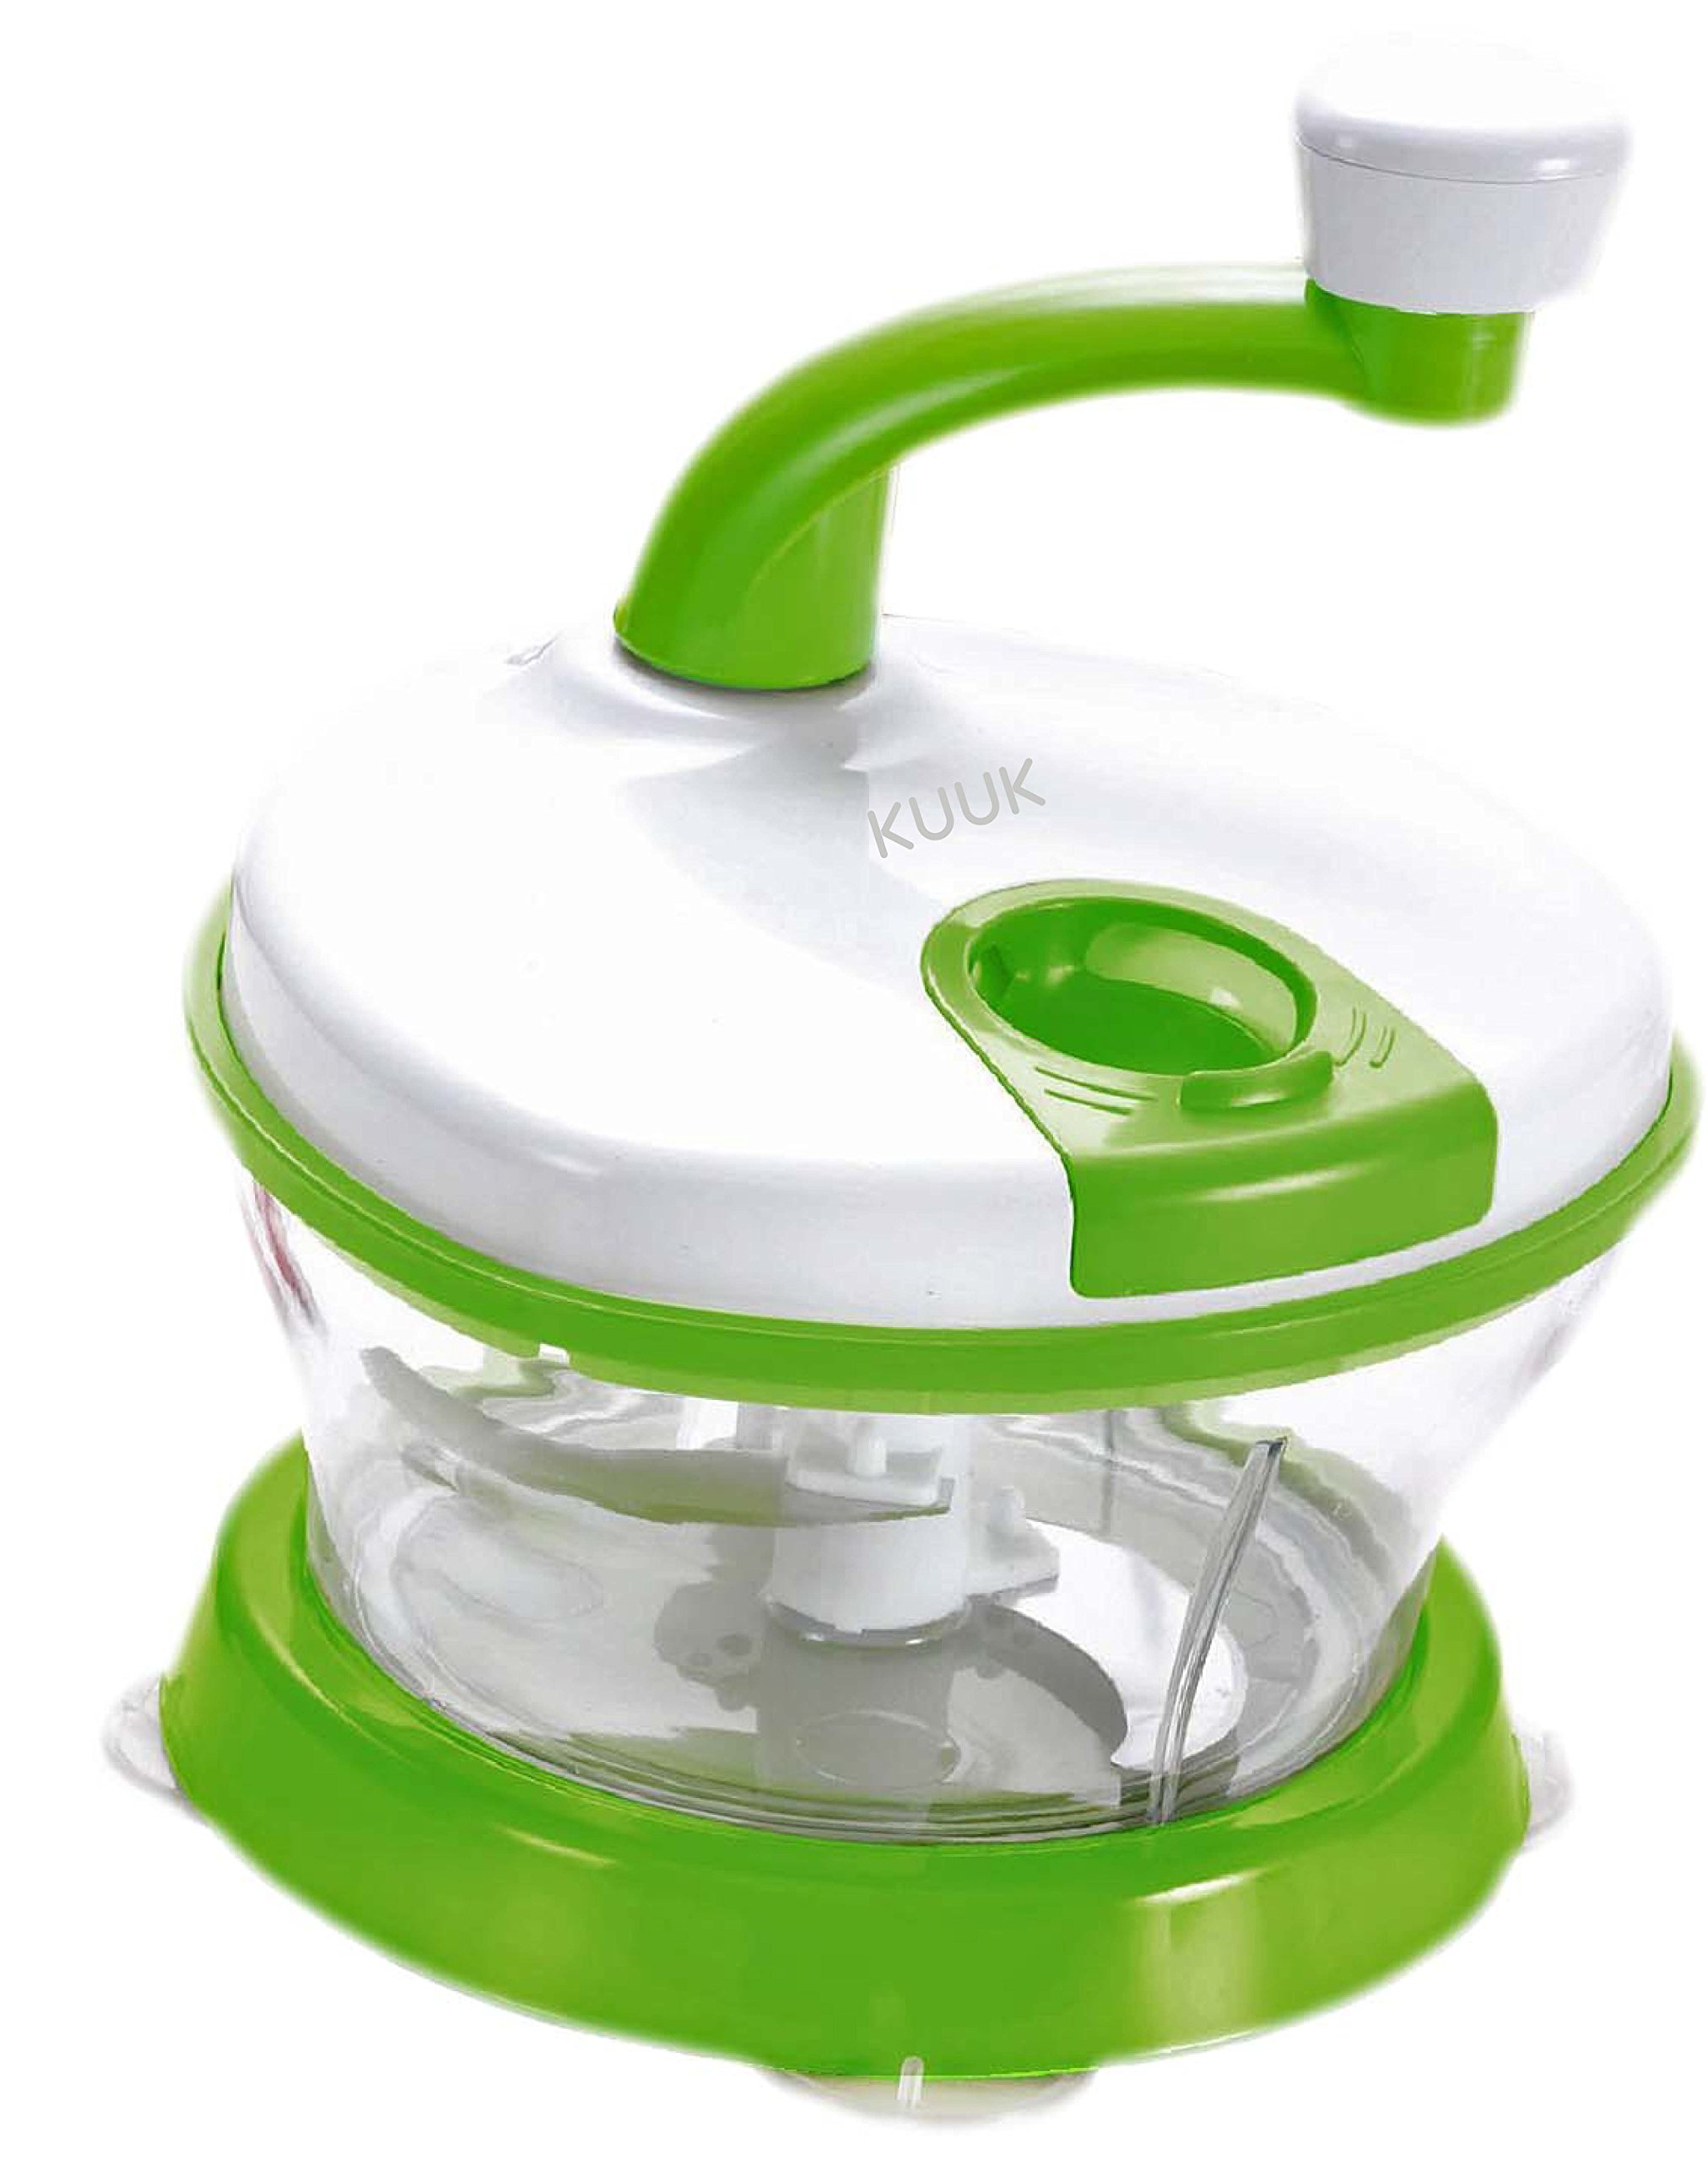 How To Chop Salad In Food Processor